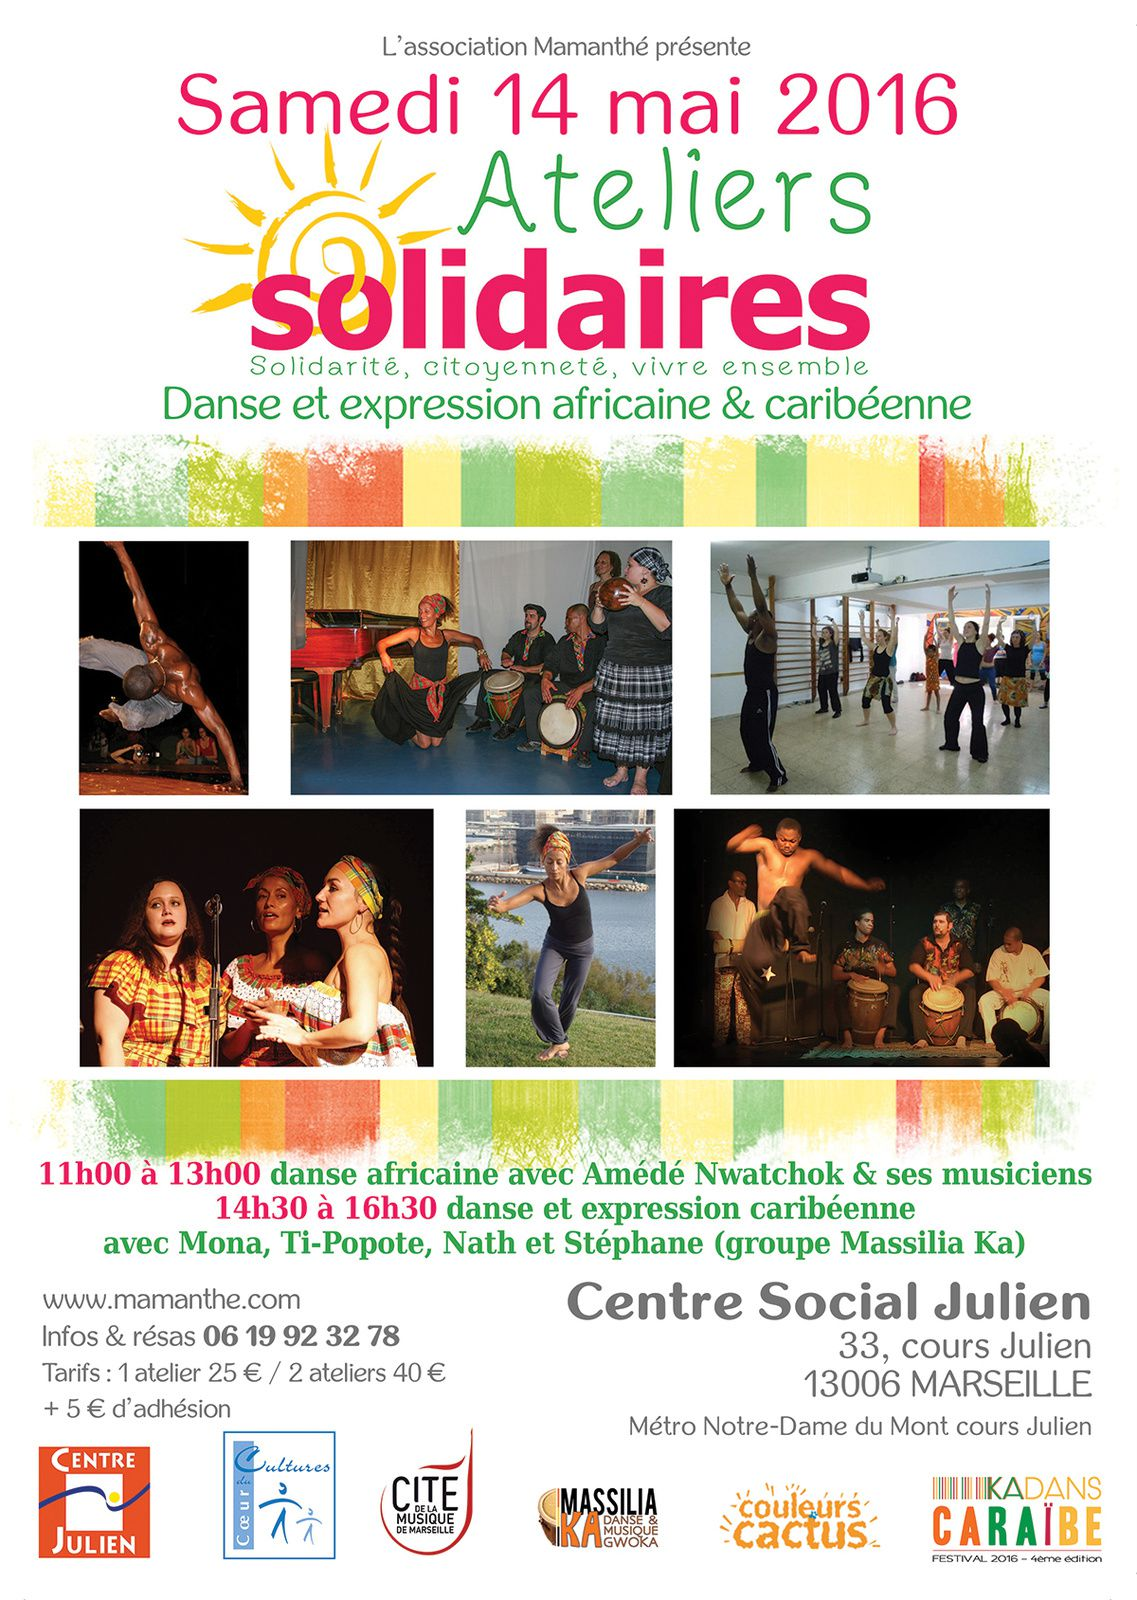 14/05/16 - Ateliers solidaires - Marseille